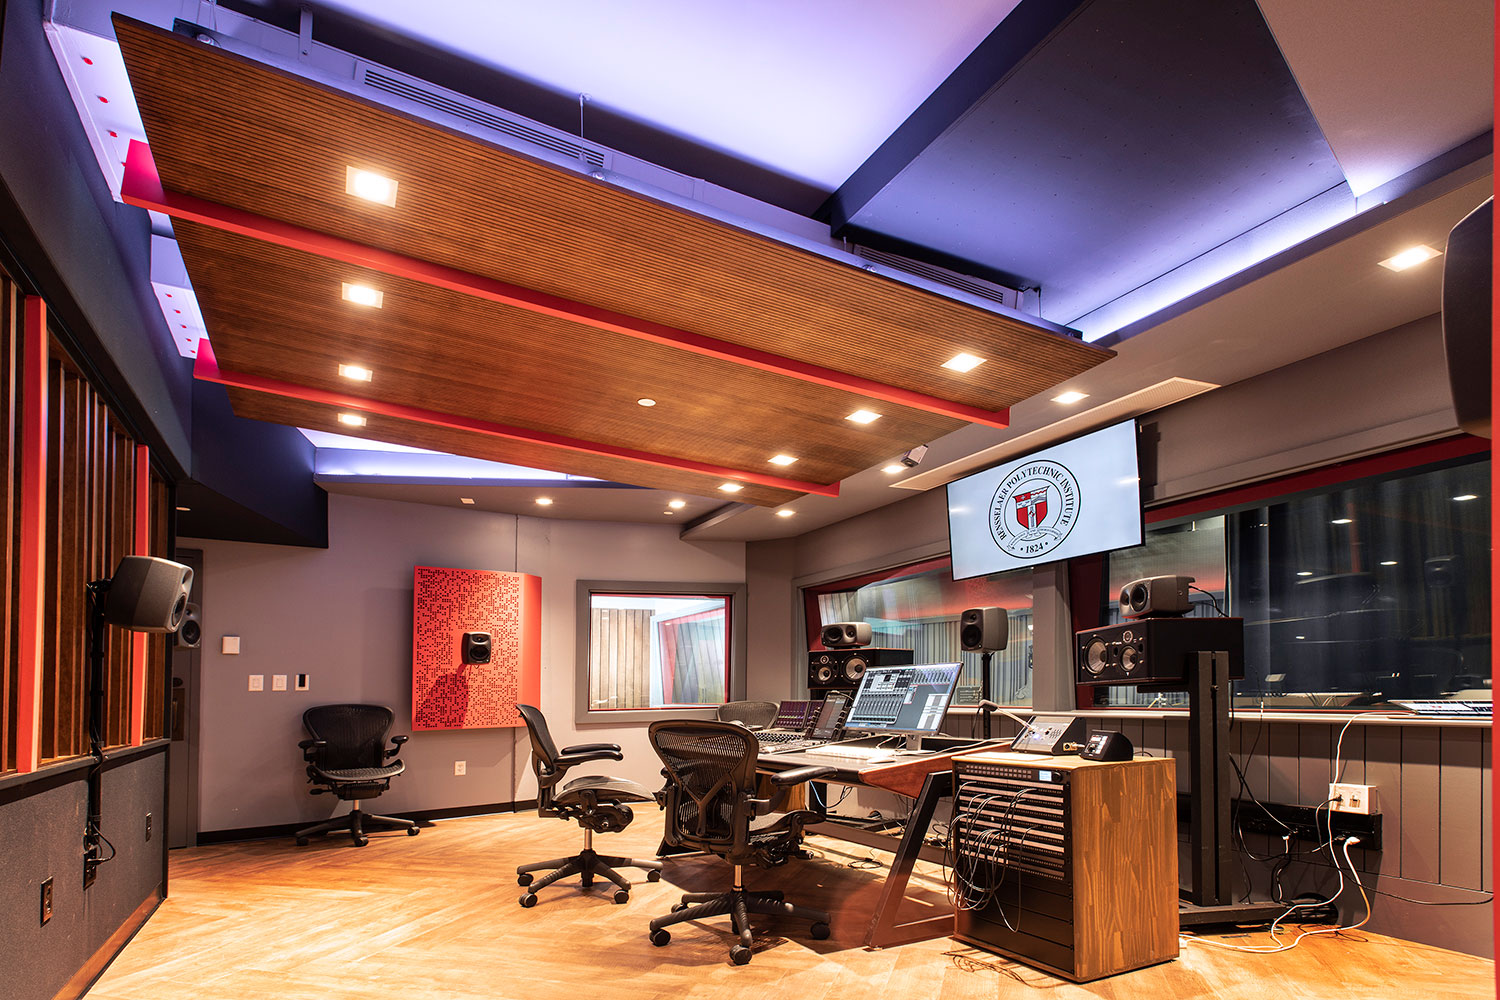 Rensselaer Polytechnic Institute (RPI) brand new state-of-the-art audio production facilities, designed by WSDG - Main Control Room from the lower side